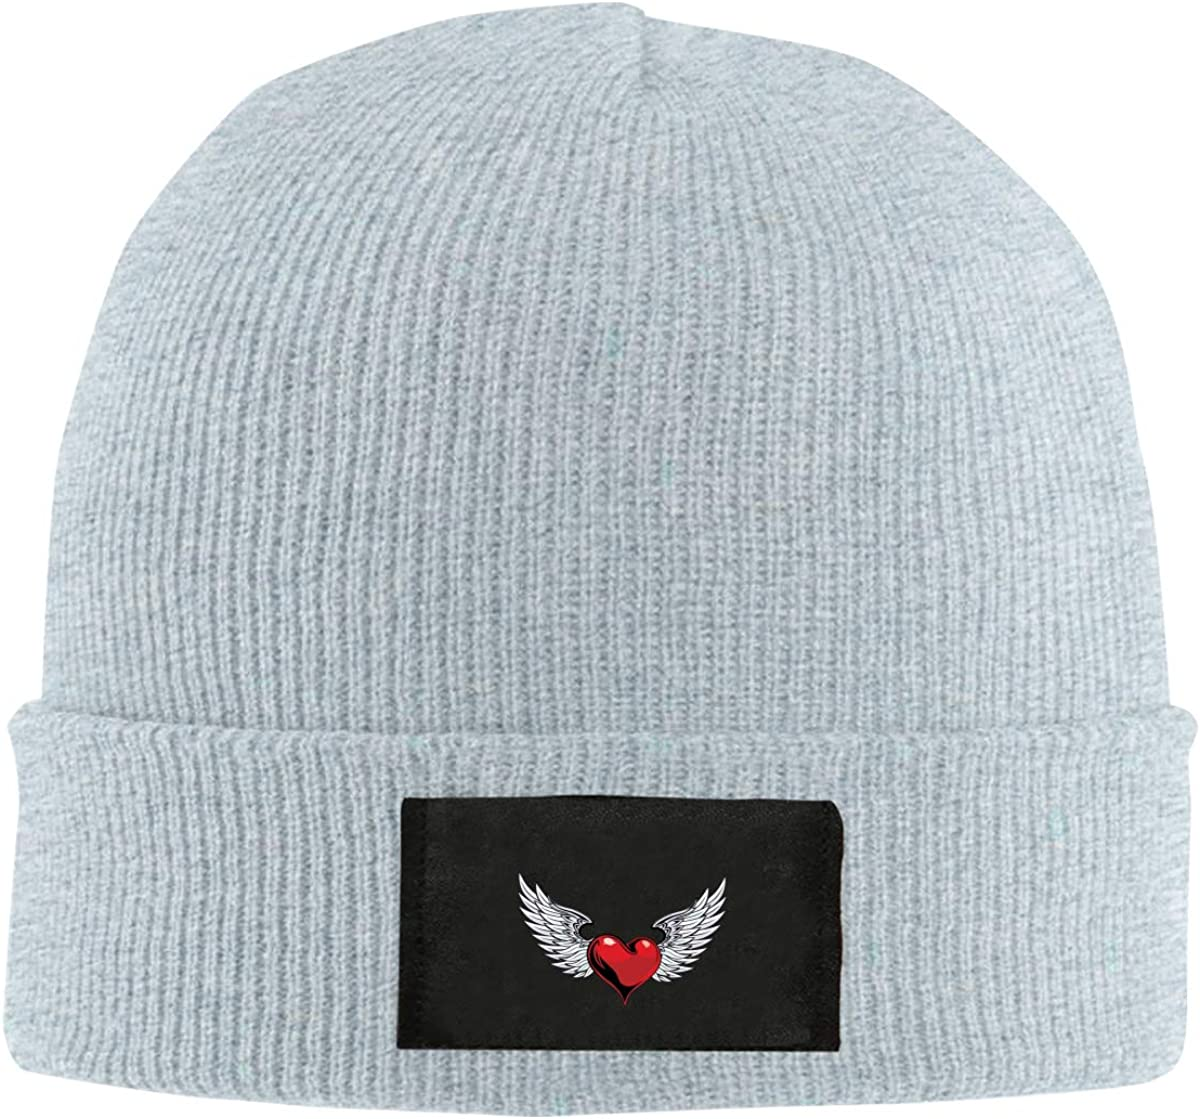 Graphics Heart and Angel Wings Top Level Beanie Men Women Unisex Stylish Slouch Beanie Hats Black